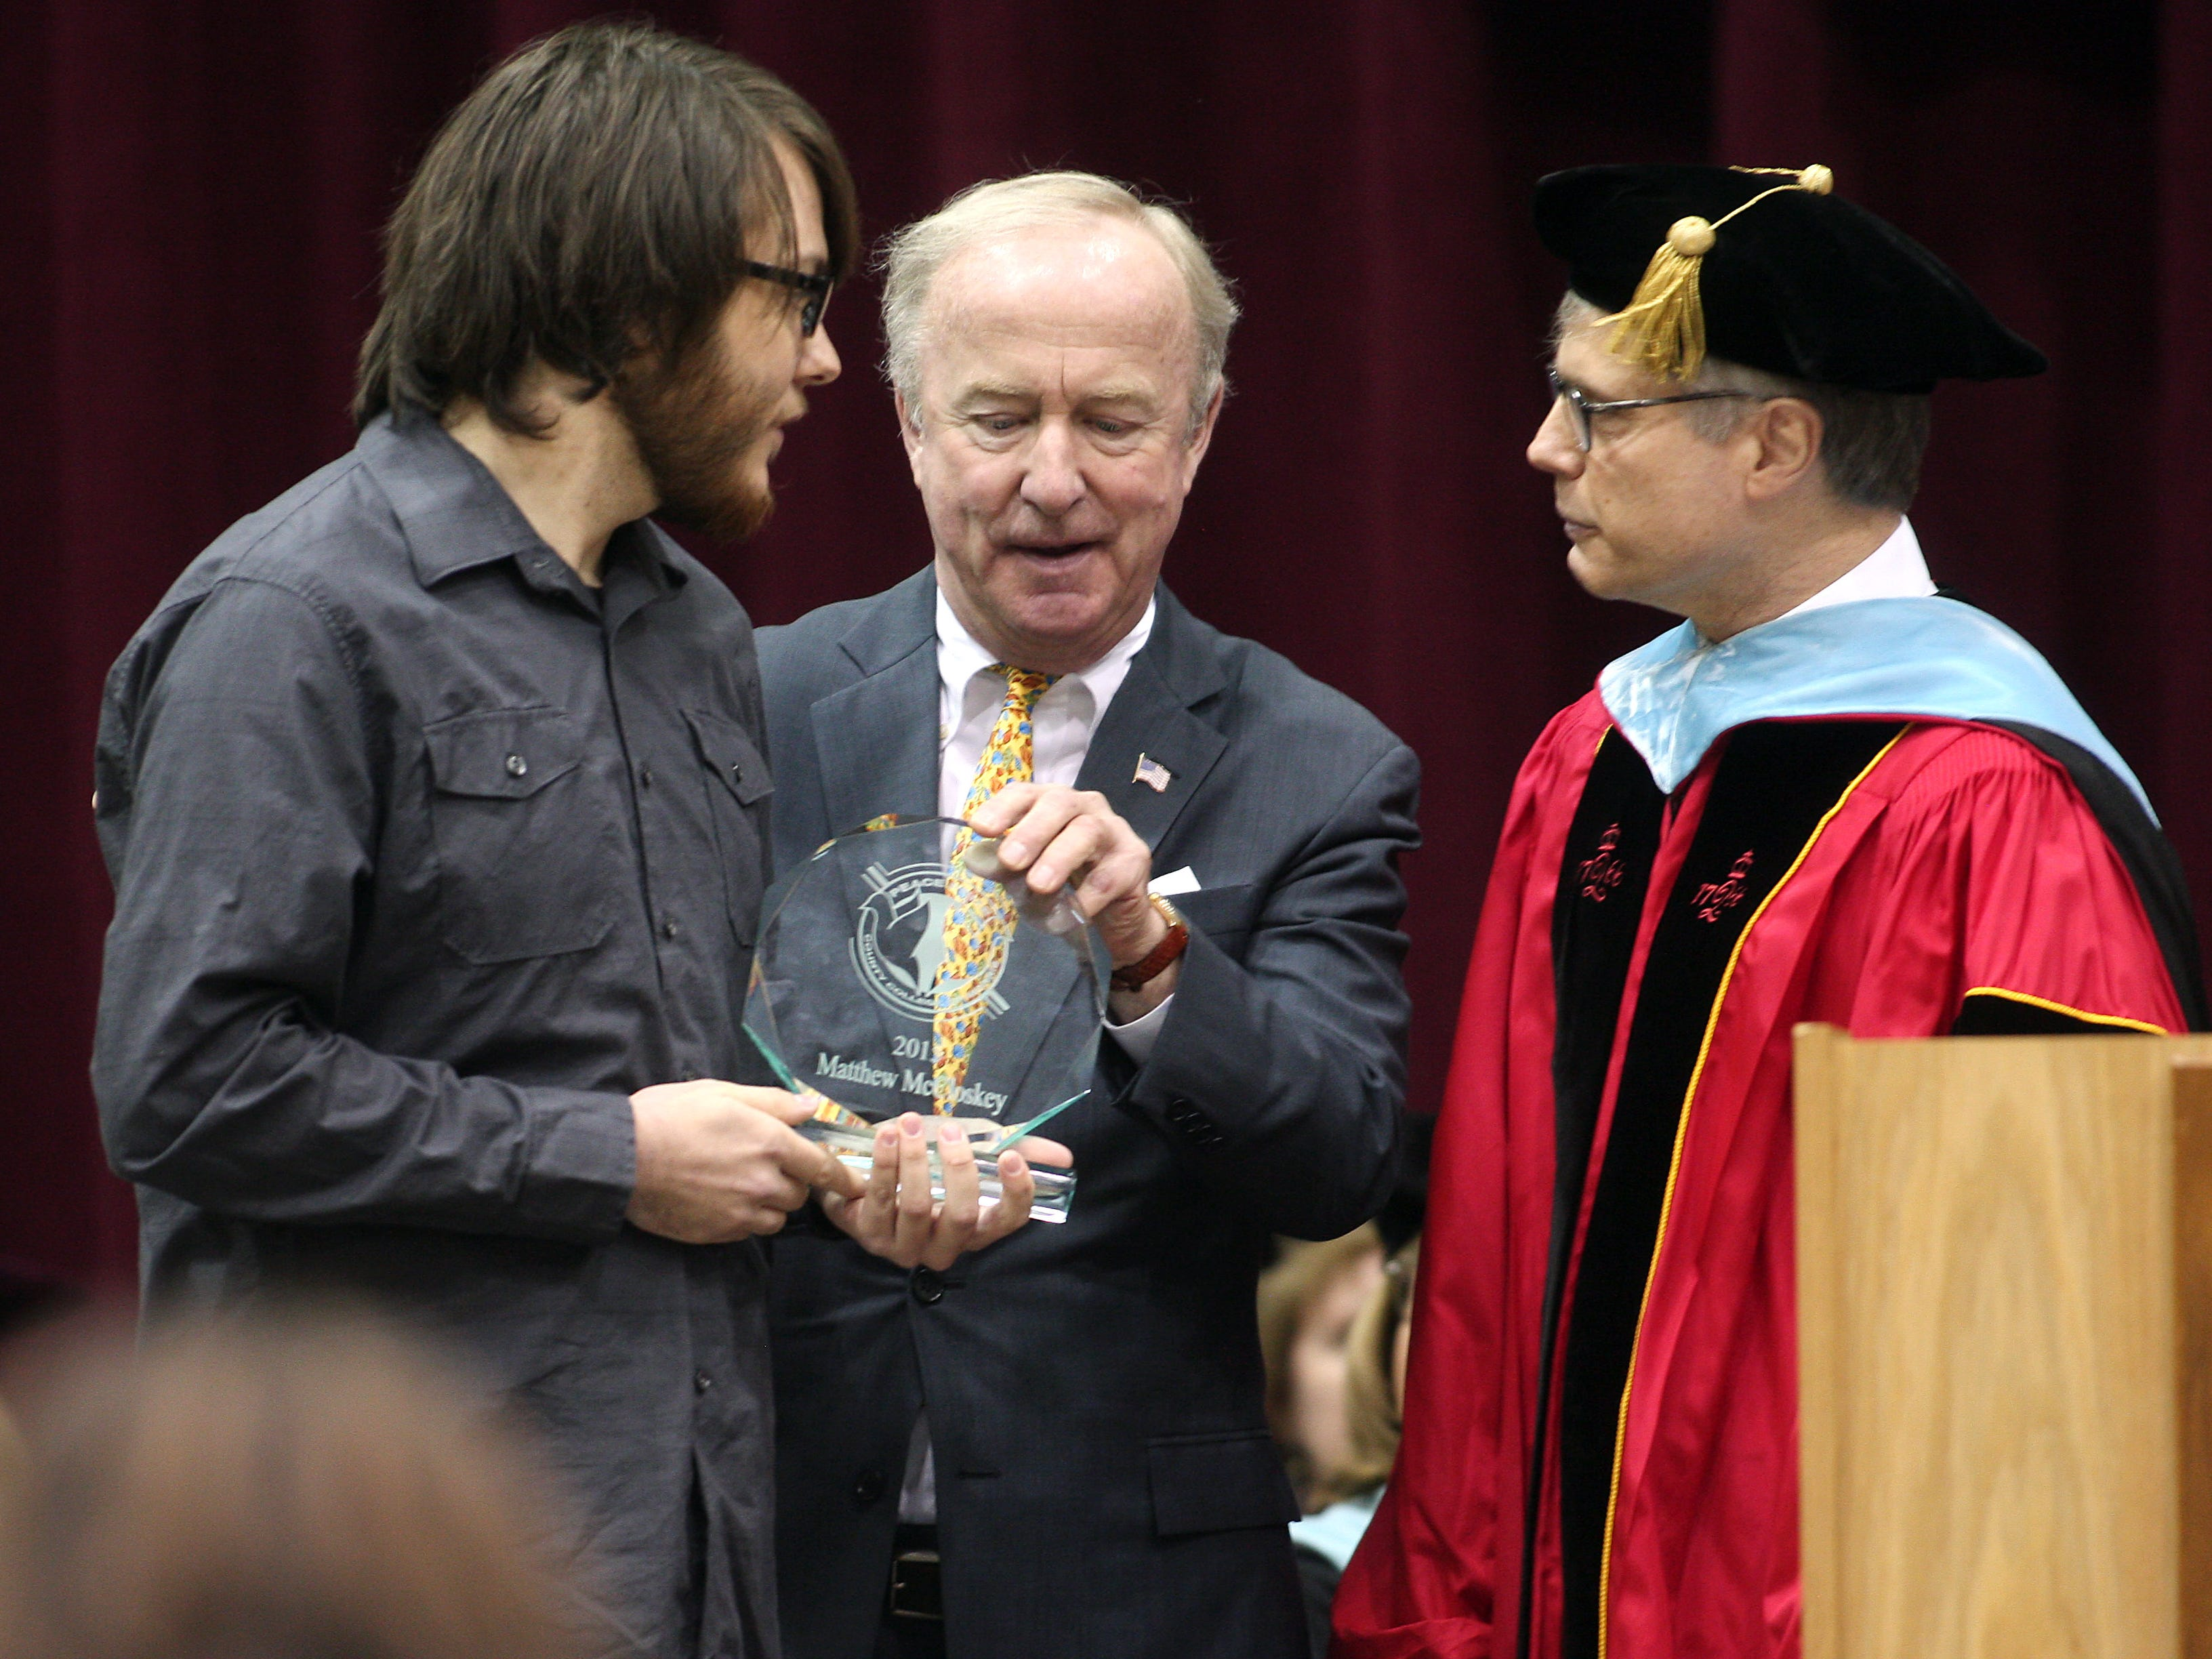 VP of Academic Affairs Dr. Dwight Smith and Congressman Rodney Frelinghuysen present the County College of Morris Peace Prize to Matthew McColoskey during the 46th Commencement Ceremony. May 22, 2015. Randolph, N.J. Bob Karp/Staff Photographer.